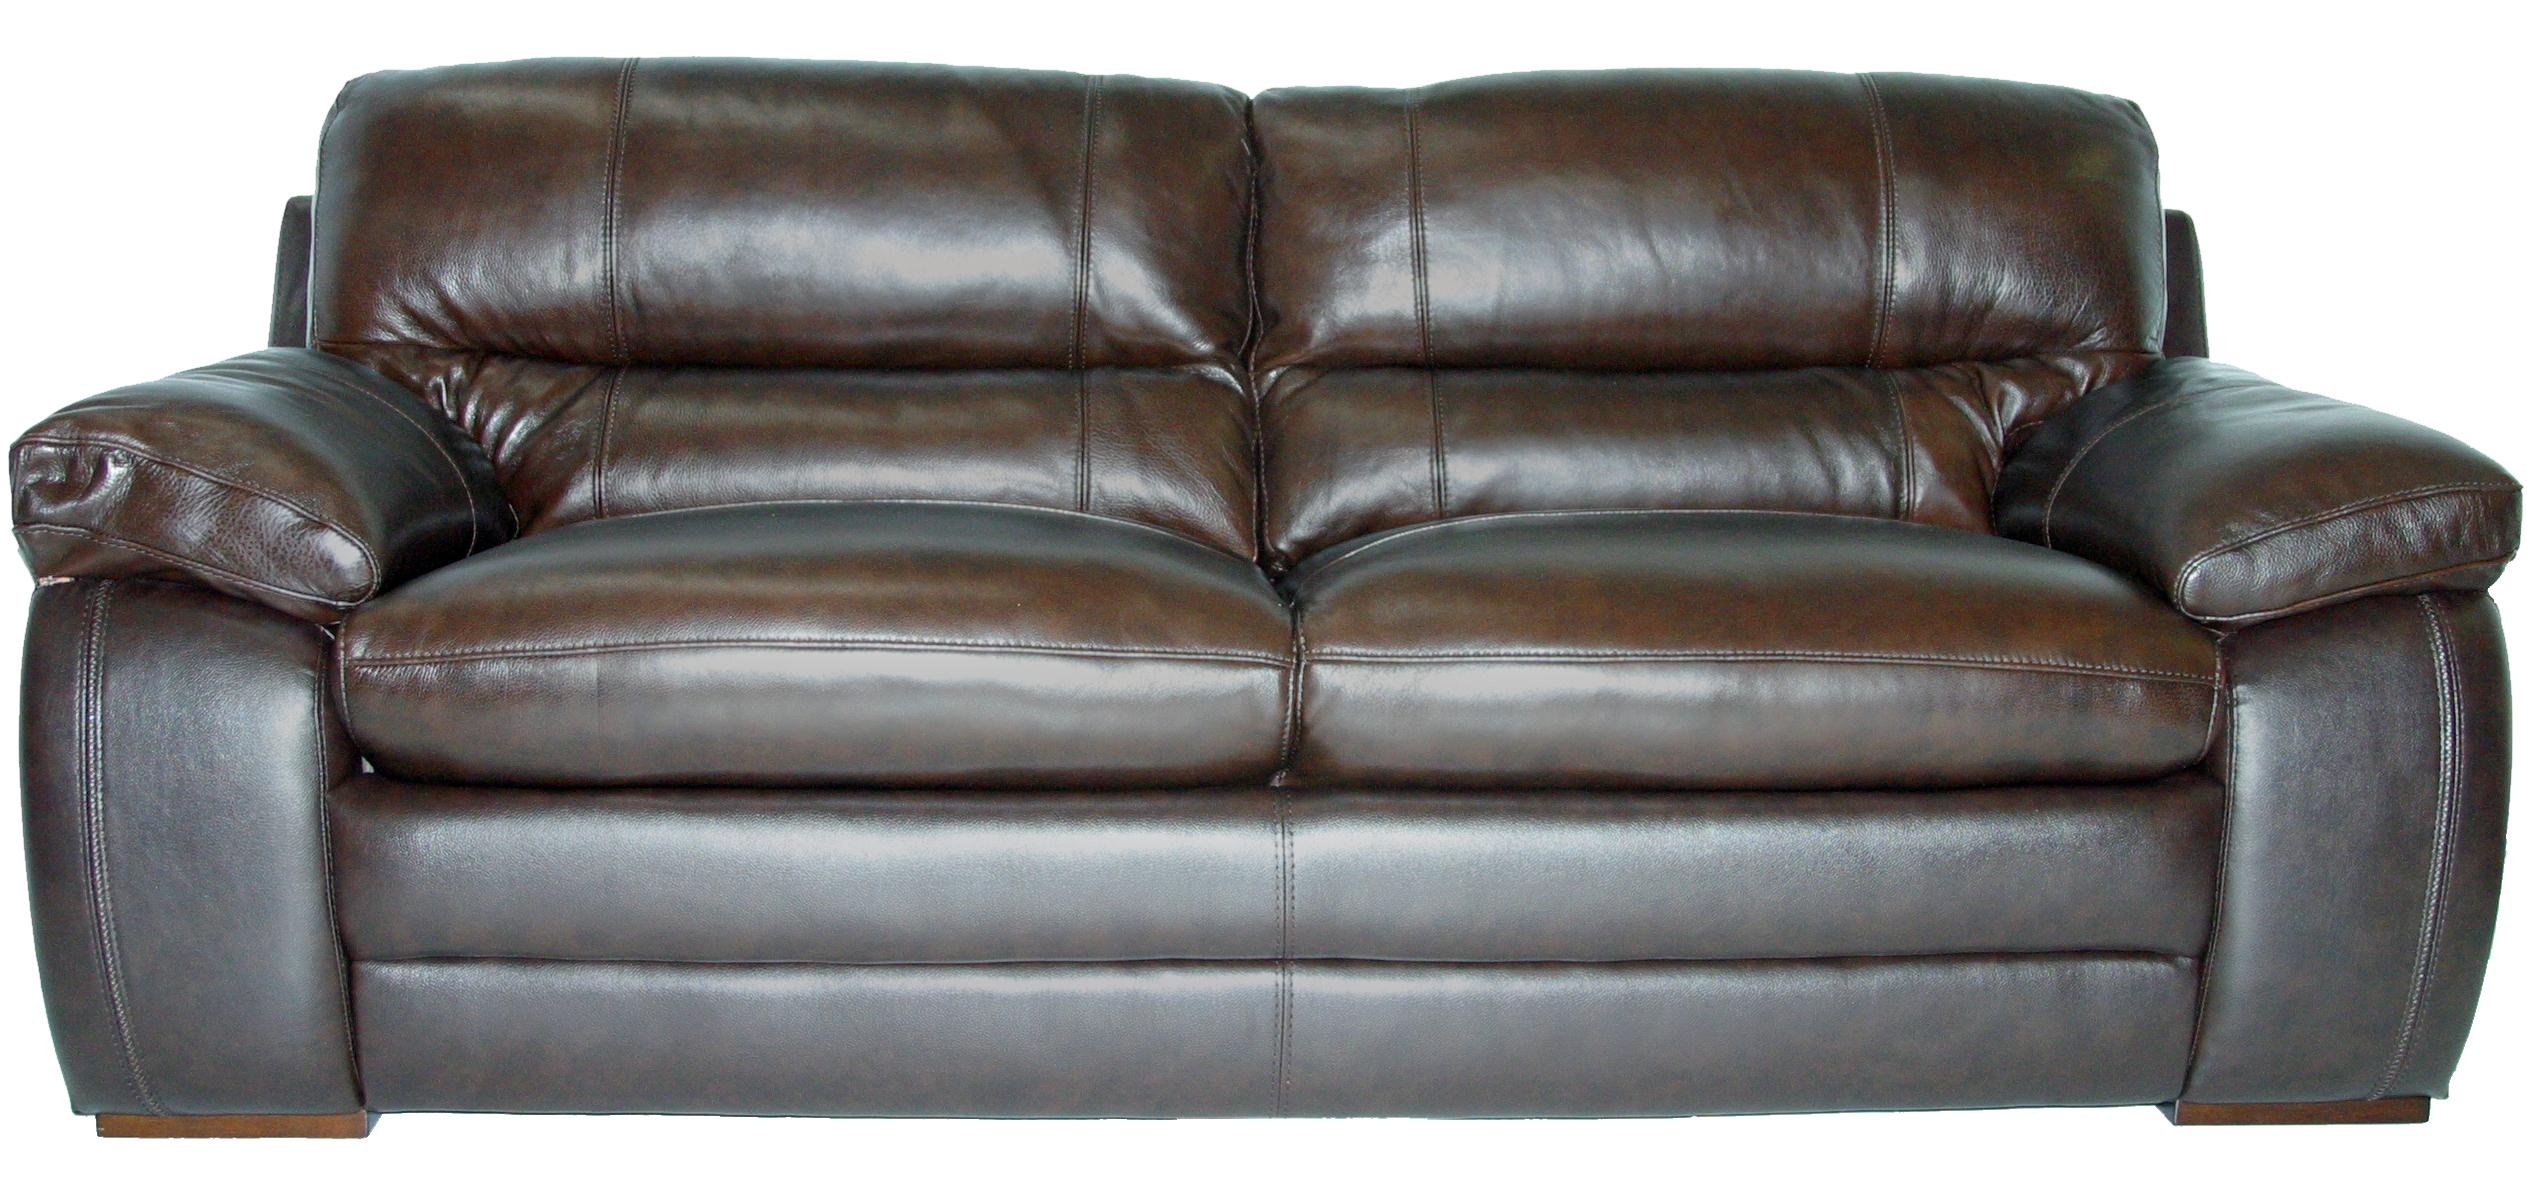 30690 Sofa by Violino at Furniture Superstore - Rochester, MN